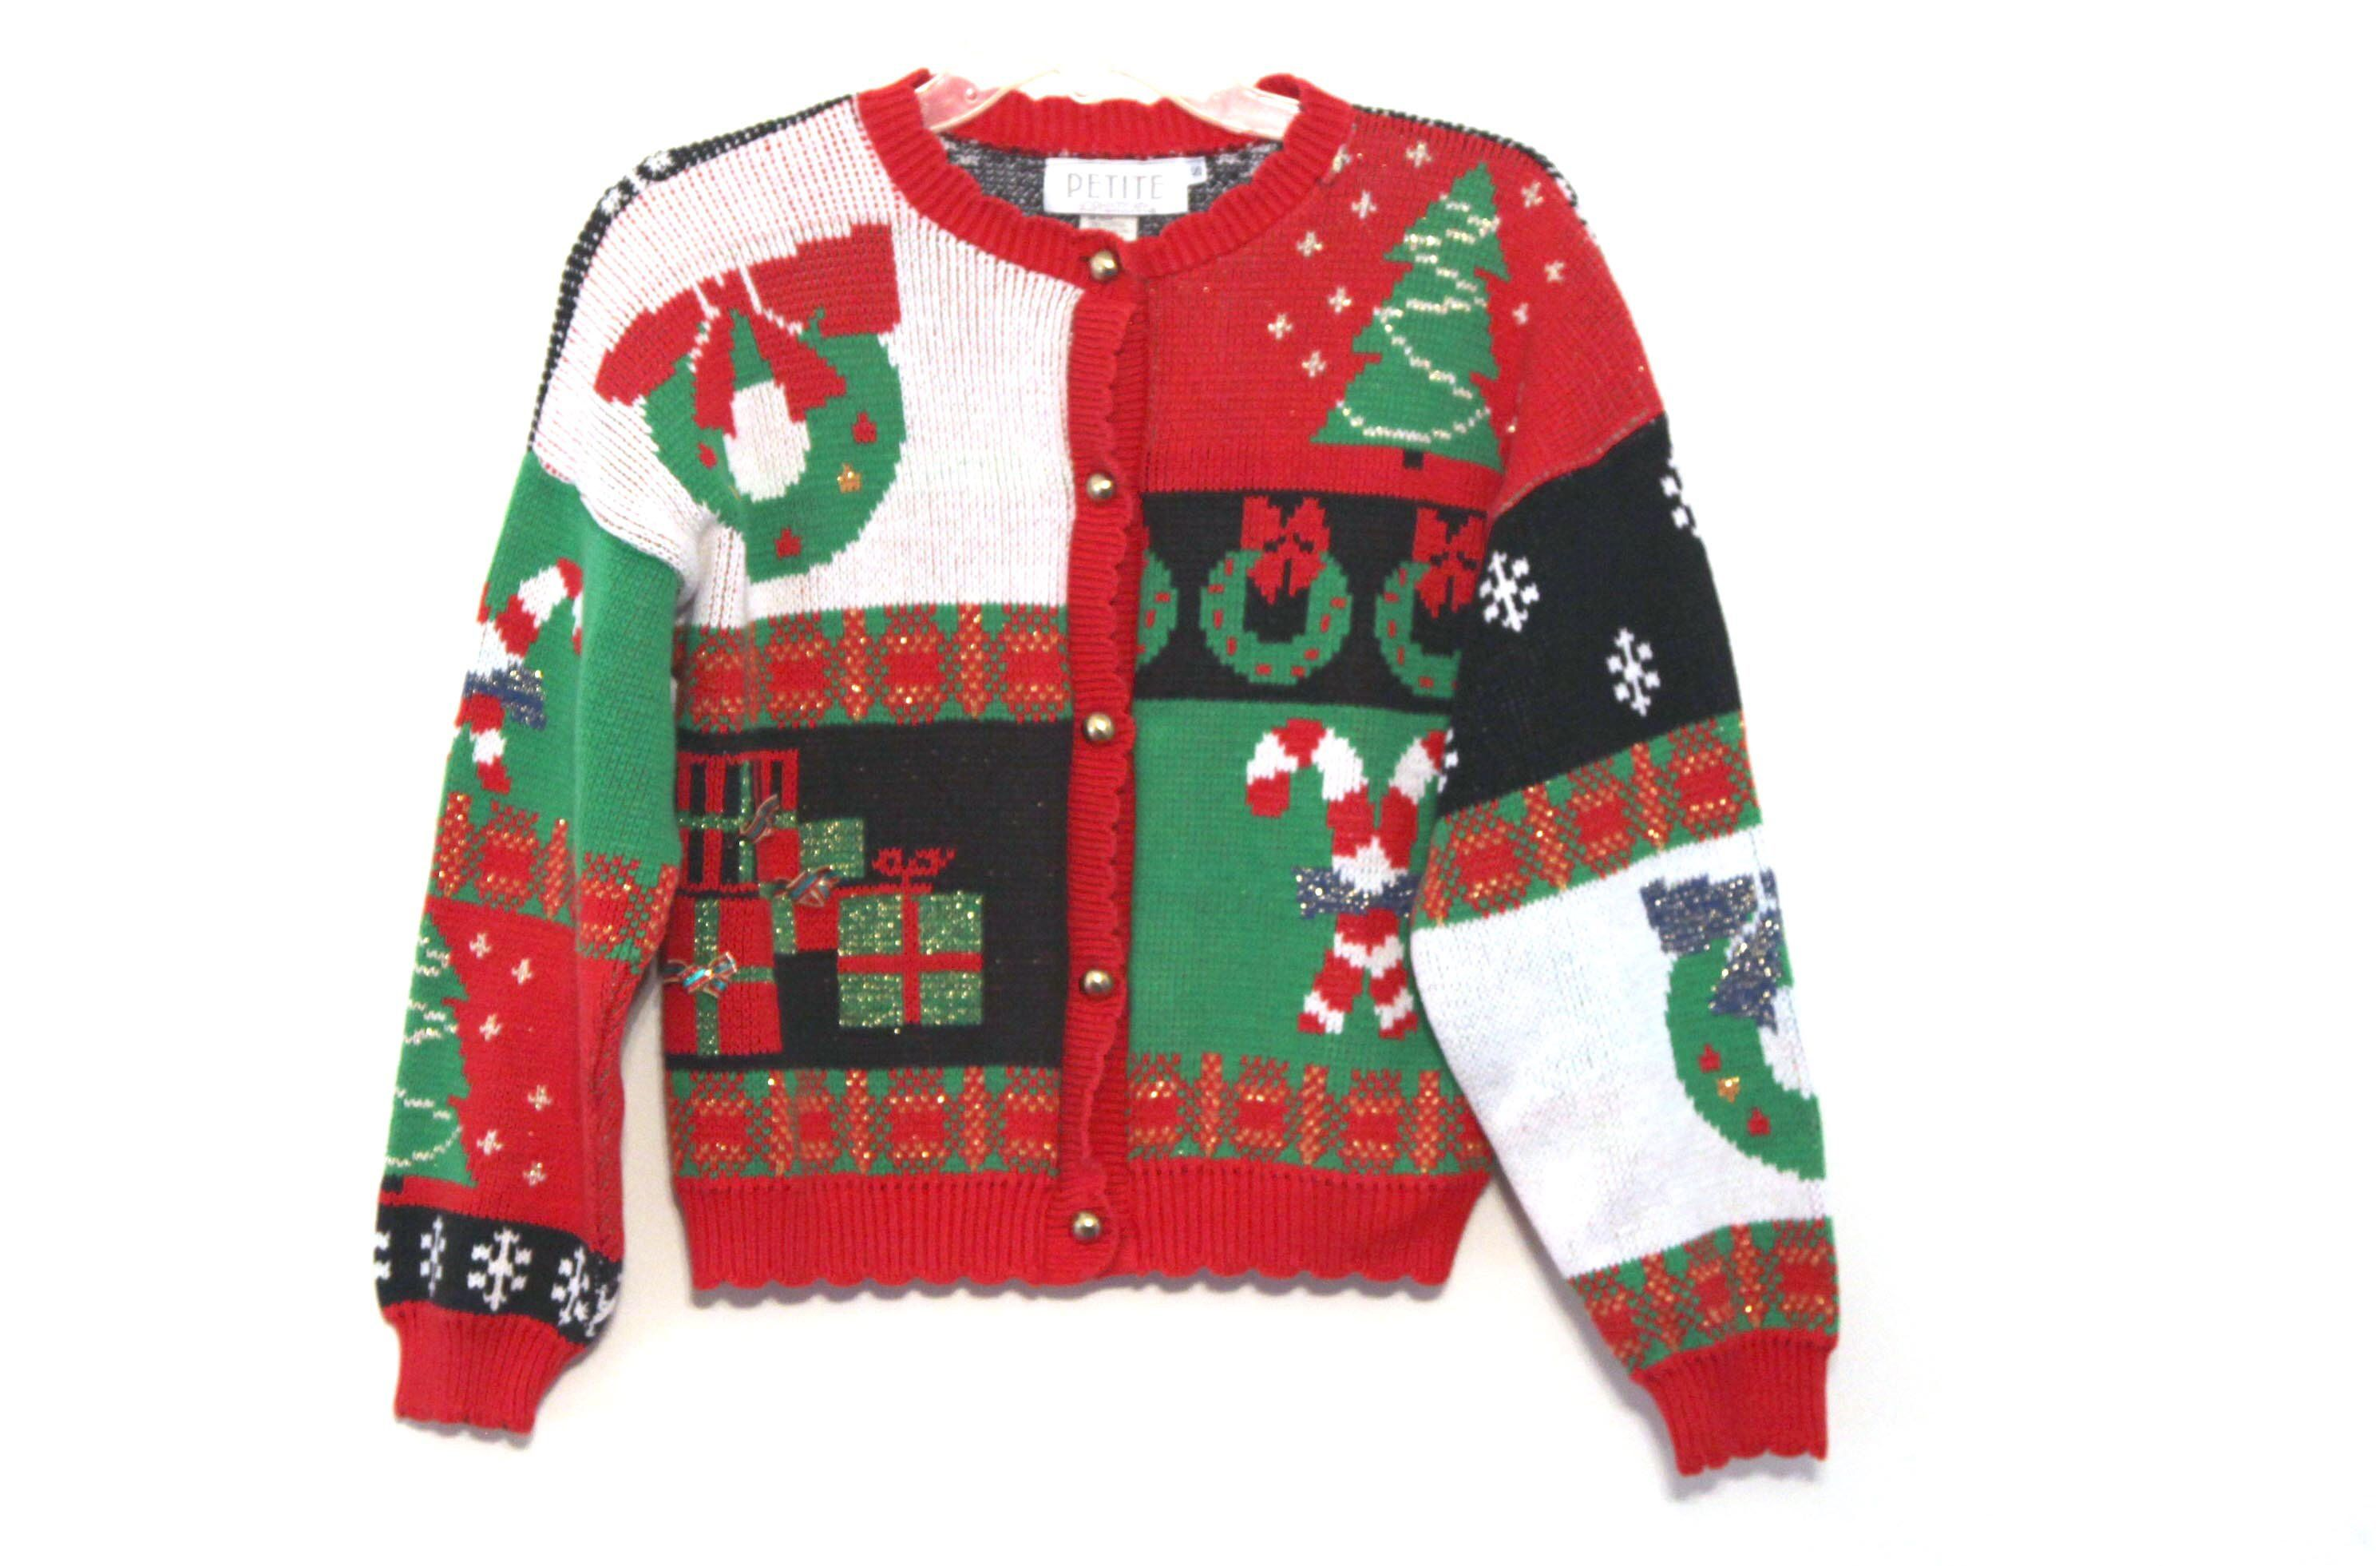 Vintage Christmas Sweaters.Vintage 80s Christmas Sweater Ugly Cute Red Green Xmas